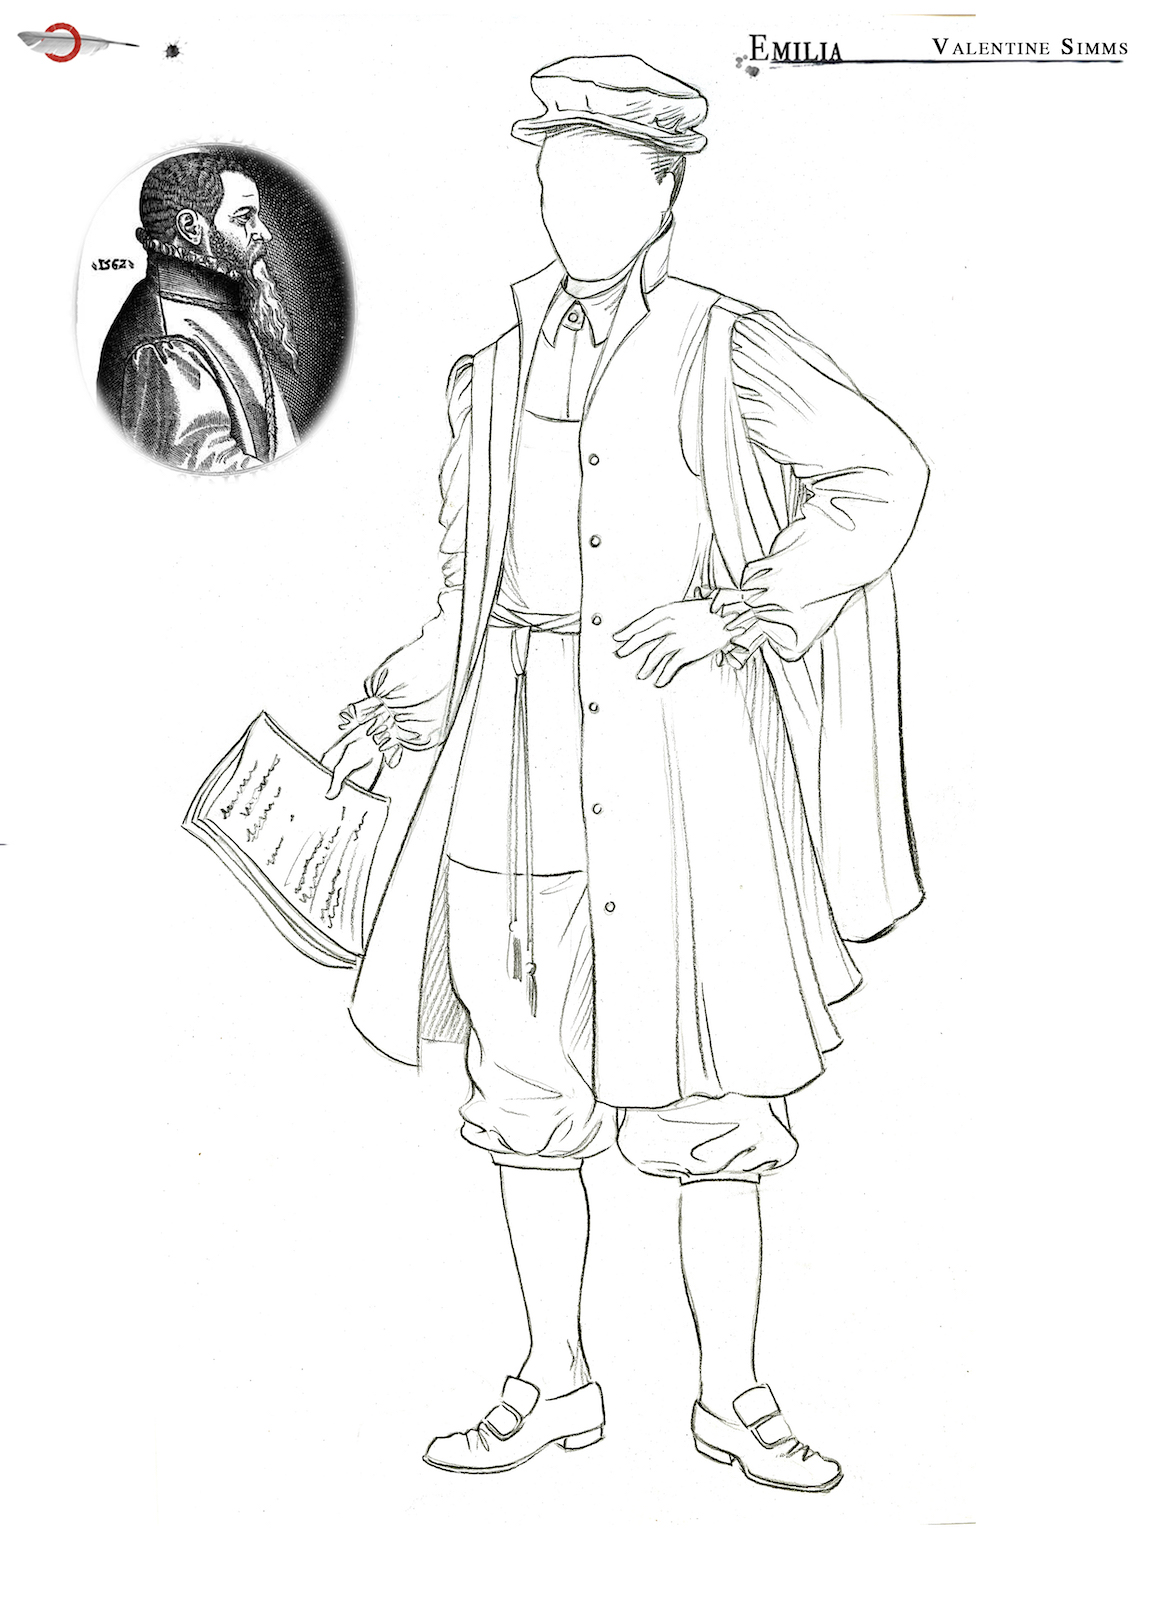 A costume sketch of a male outfit with short breeches, shoes, hat and a coat